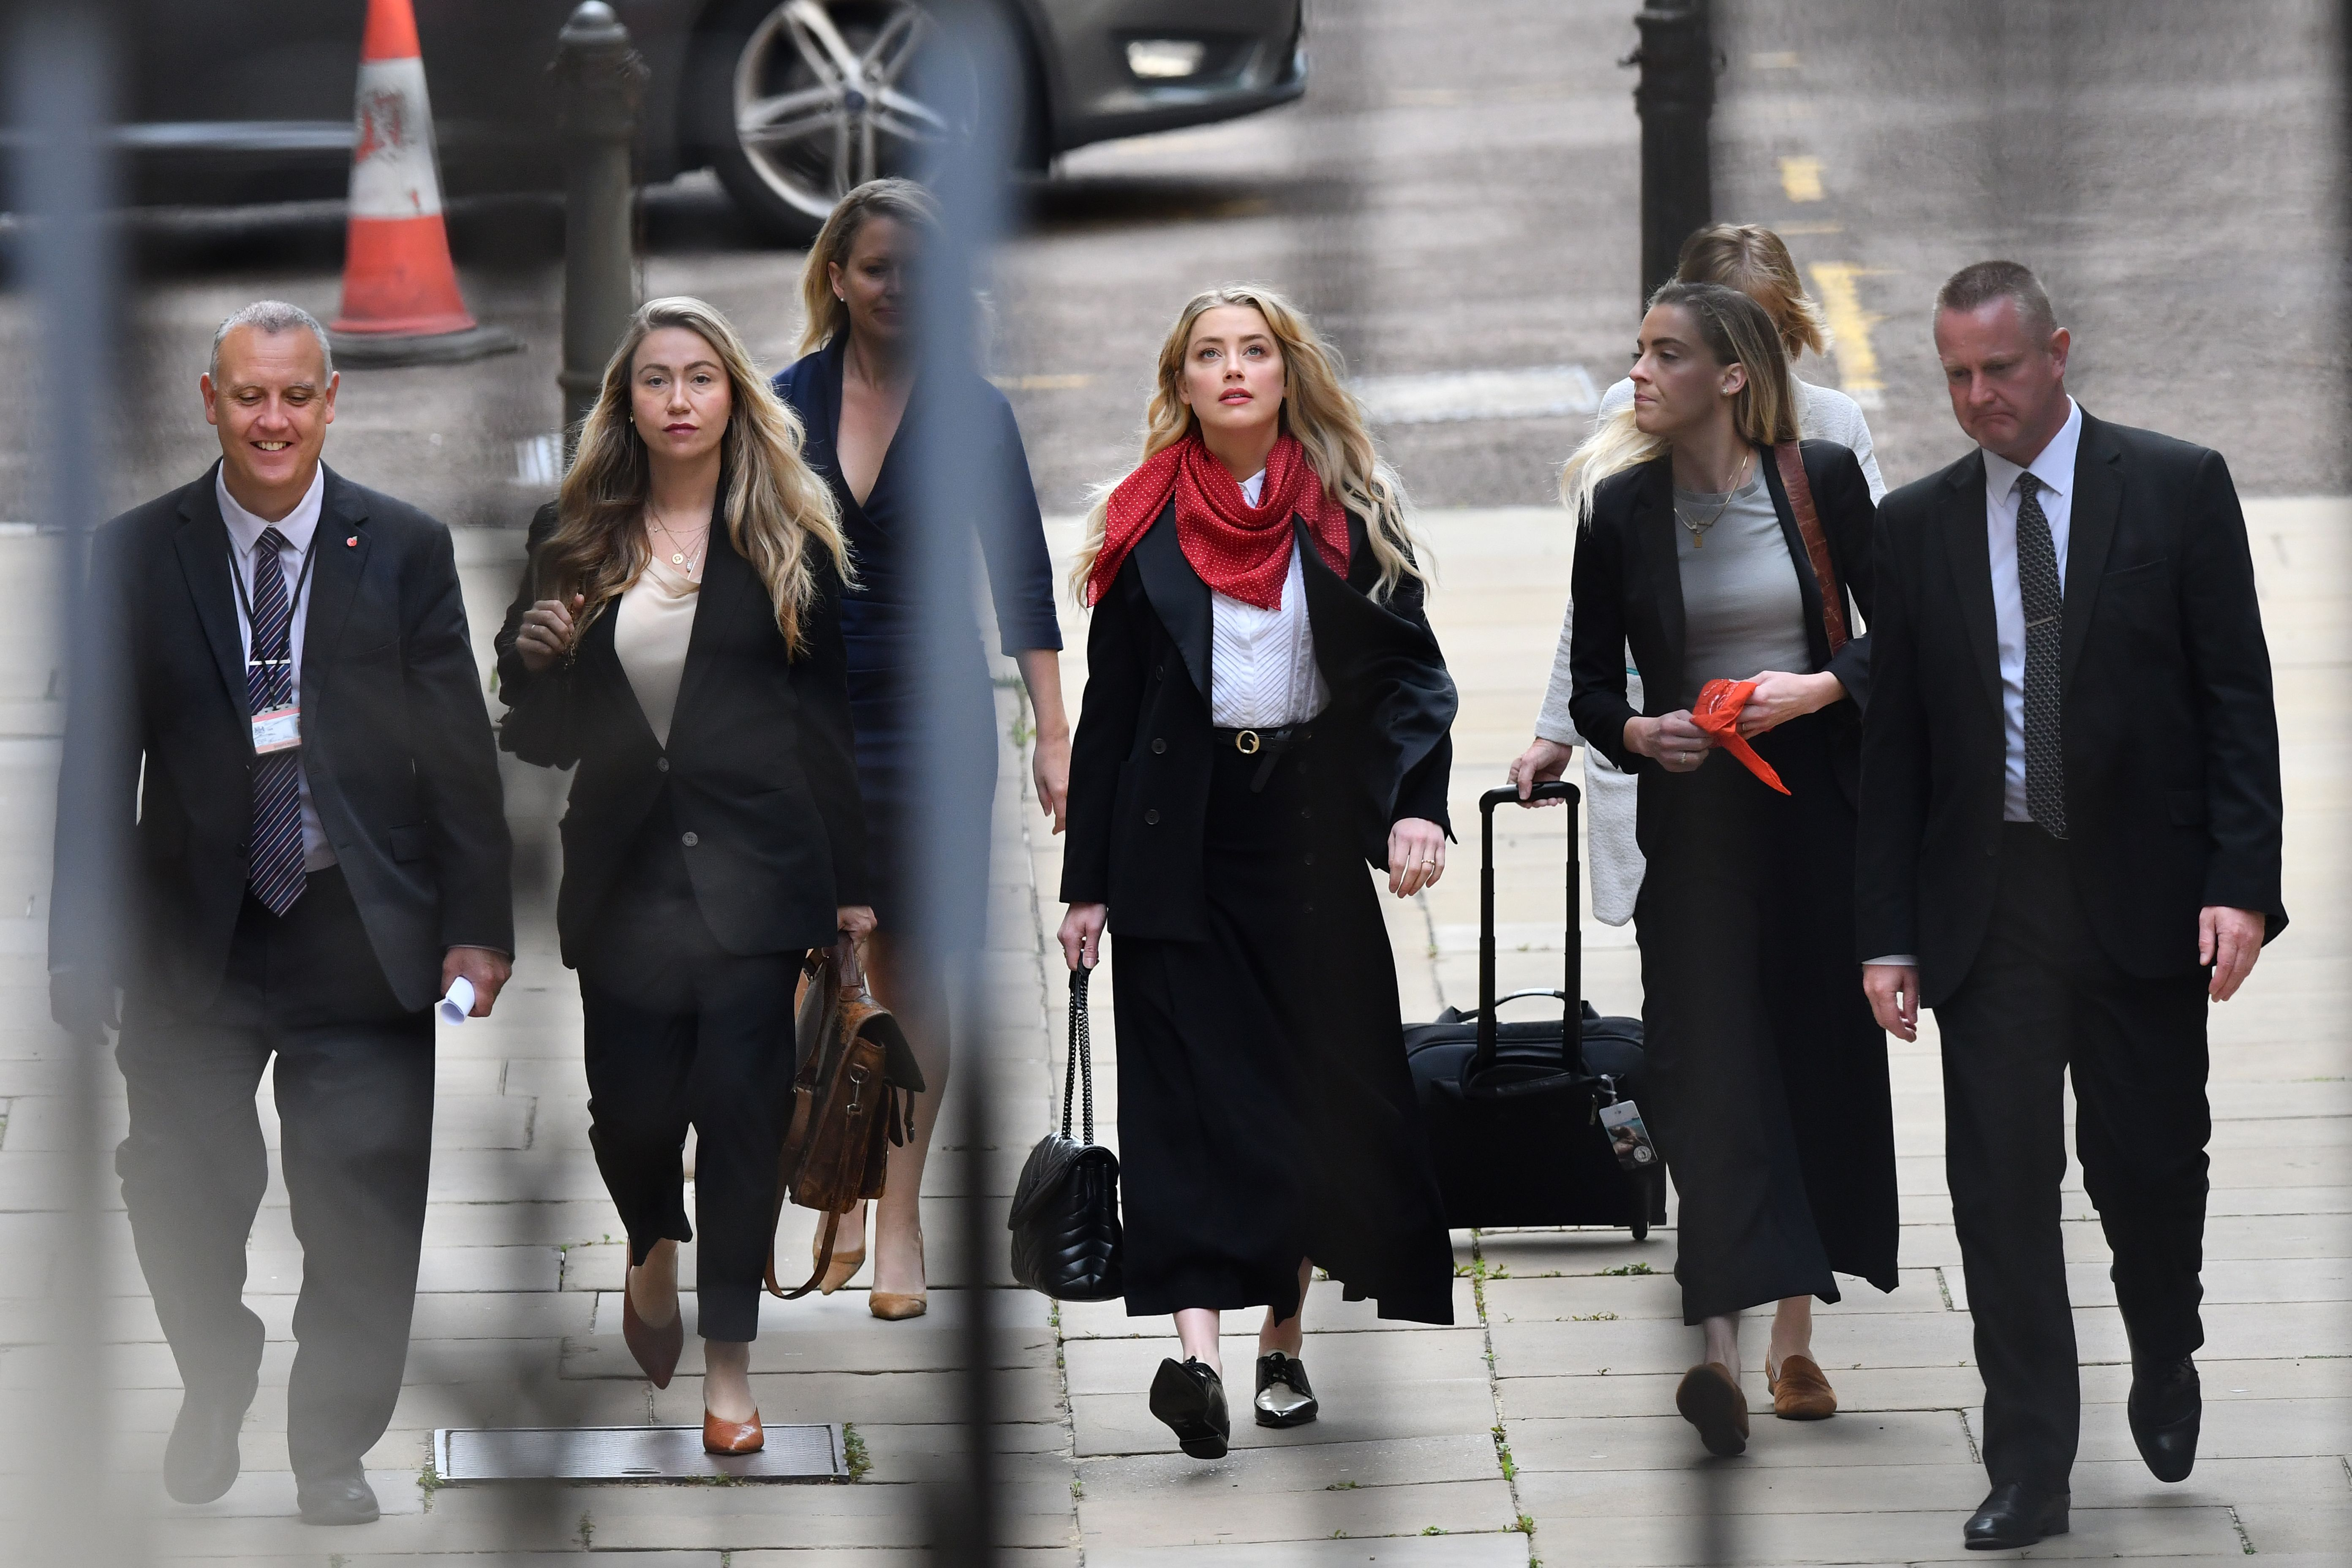 """US actress Amber Heard (C) arrives on the sixth day of the libel trial by her former husband US actor Johnny Depp against News Group Newspapers (NGN), at the High Court in London, on July 14, 2020. - Depp is suing the publishers of The Sun and the author of the article for the claims that called him a """"wife-beater"""" in April 2018. (Photo by JUSTIN TALLIS/AFP via Getty Images)"""